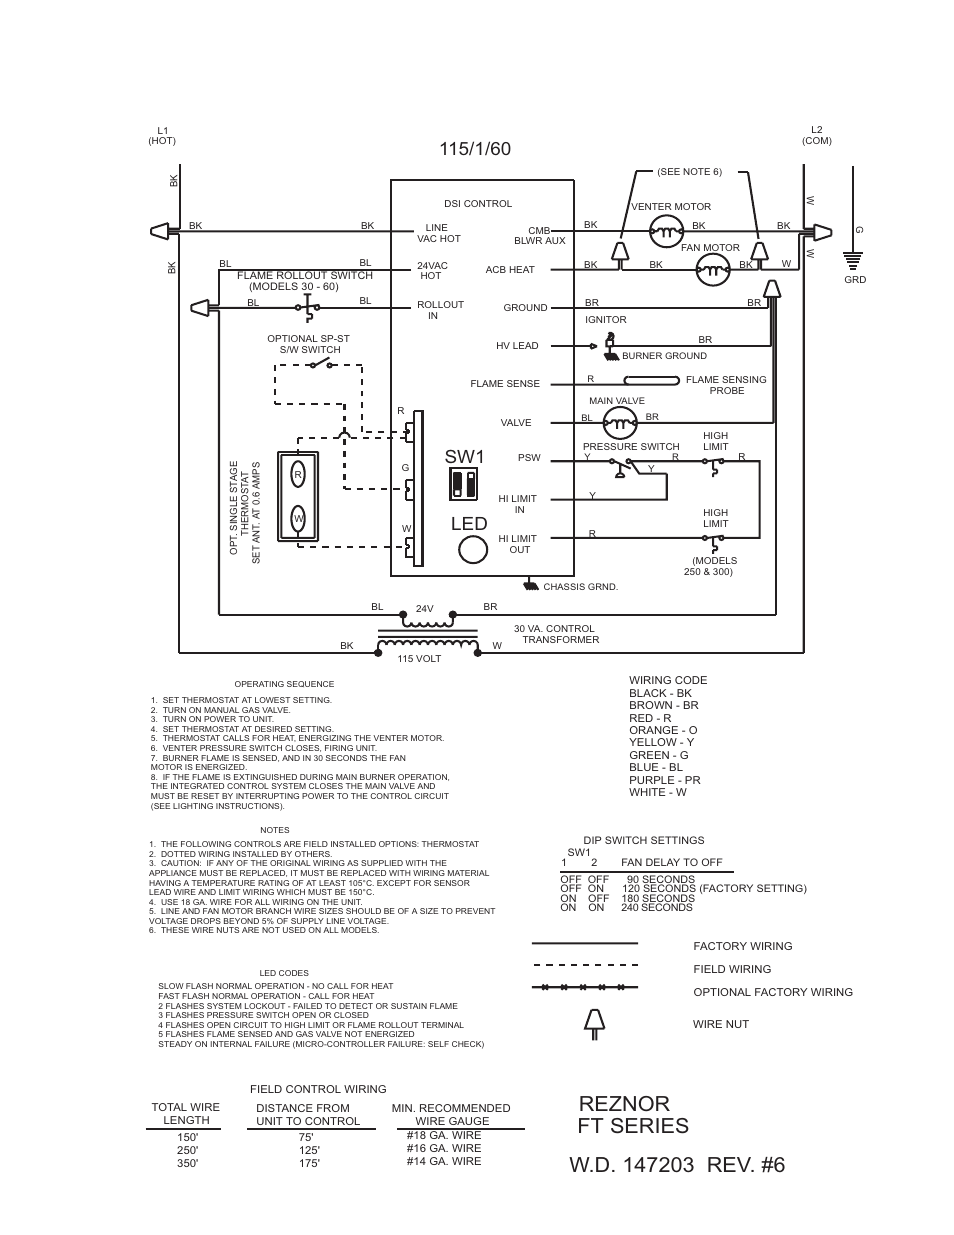 reznor ft unit installation manual page13 reznor unit heater wiring diagram reznor udap wiring diagram at gsmx.co